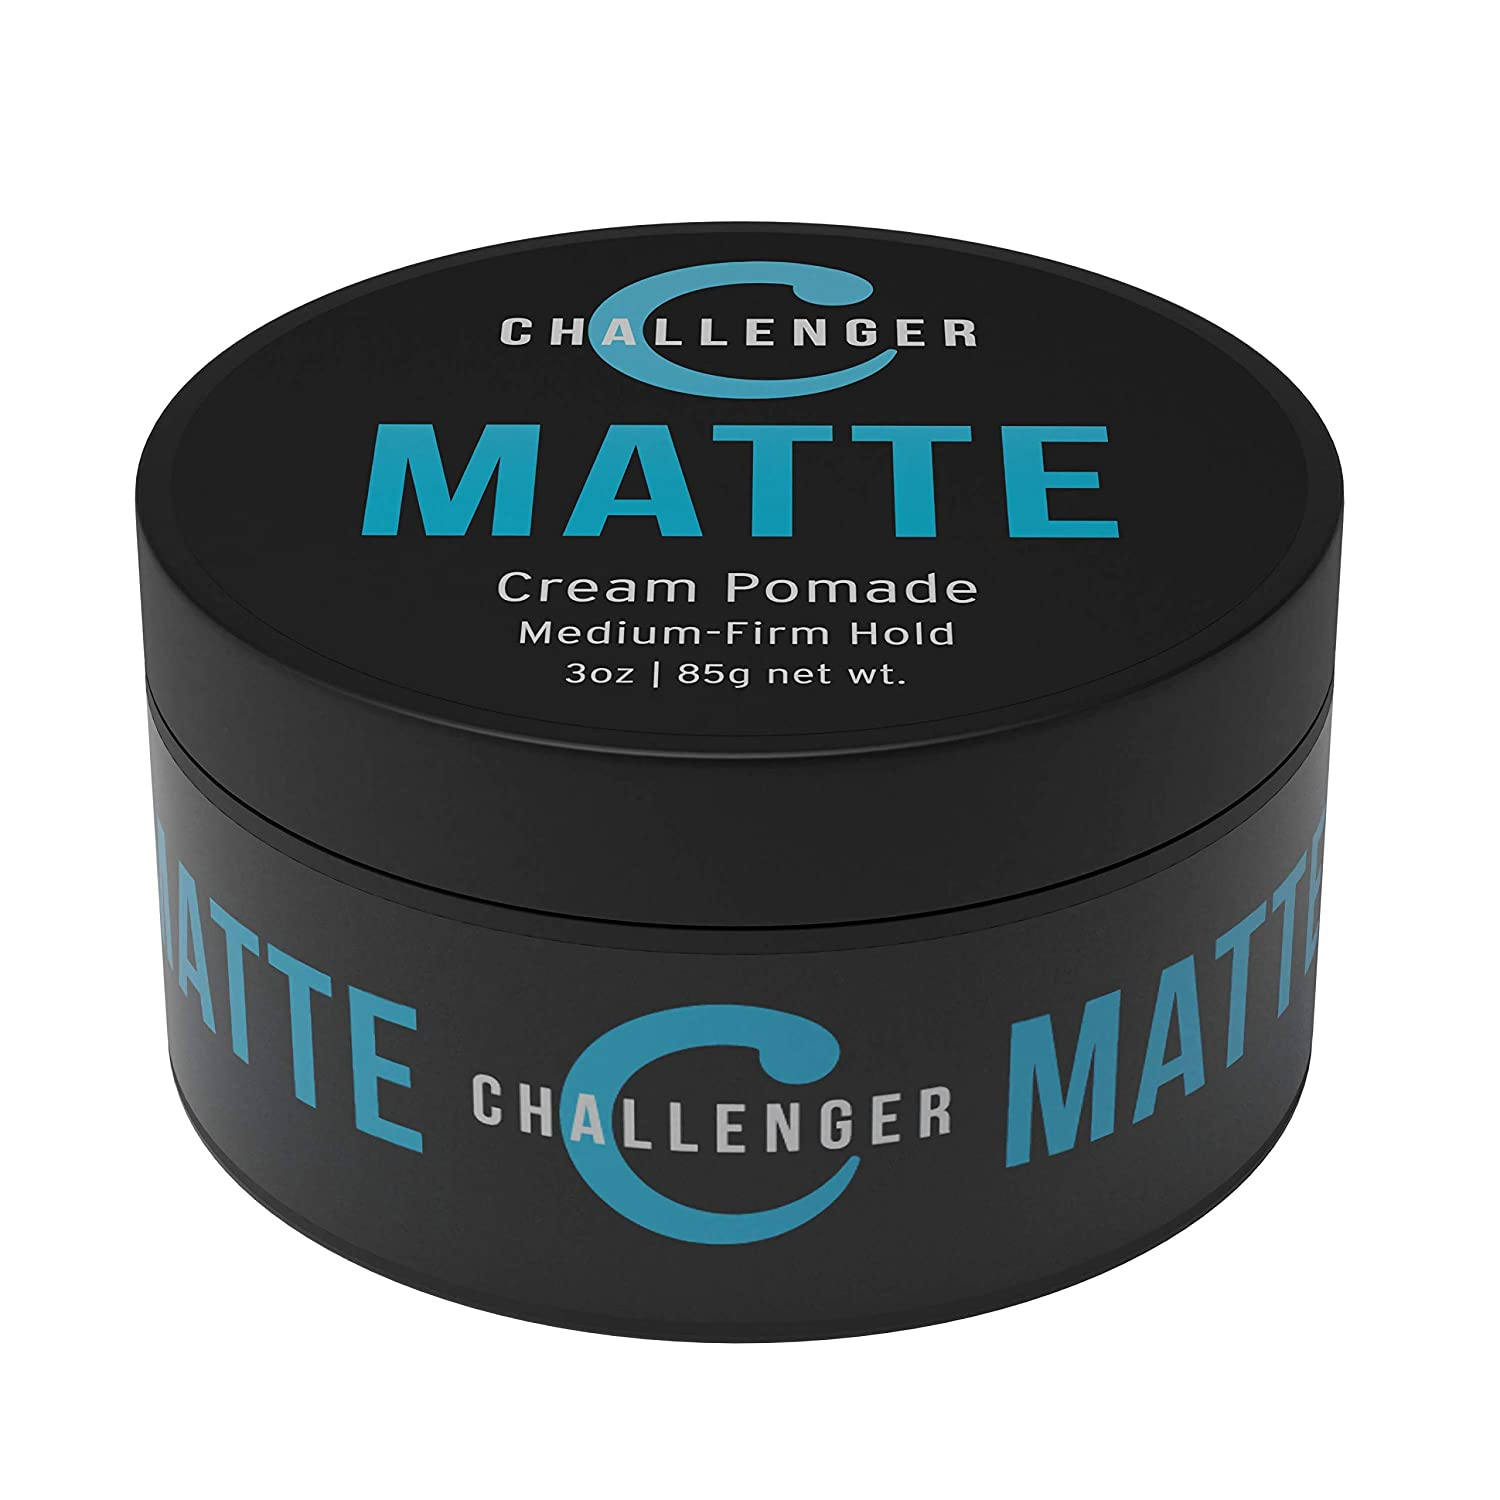 Buy Challenger Blue Matte Styling Cream 3 Oz Medium Firm Hold Best Hair Product For Short Medium Length Hair Professional Shine Free Water Soluble With Clean And Subtle Scent Online